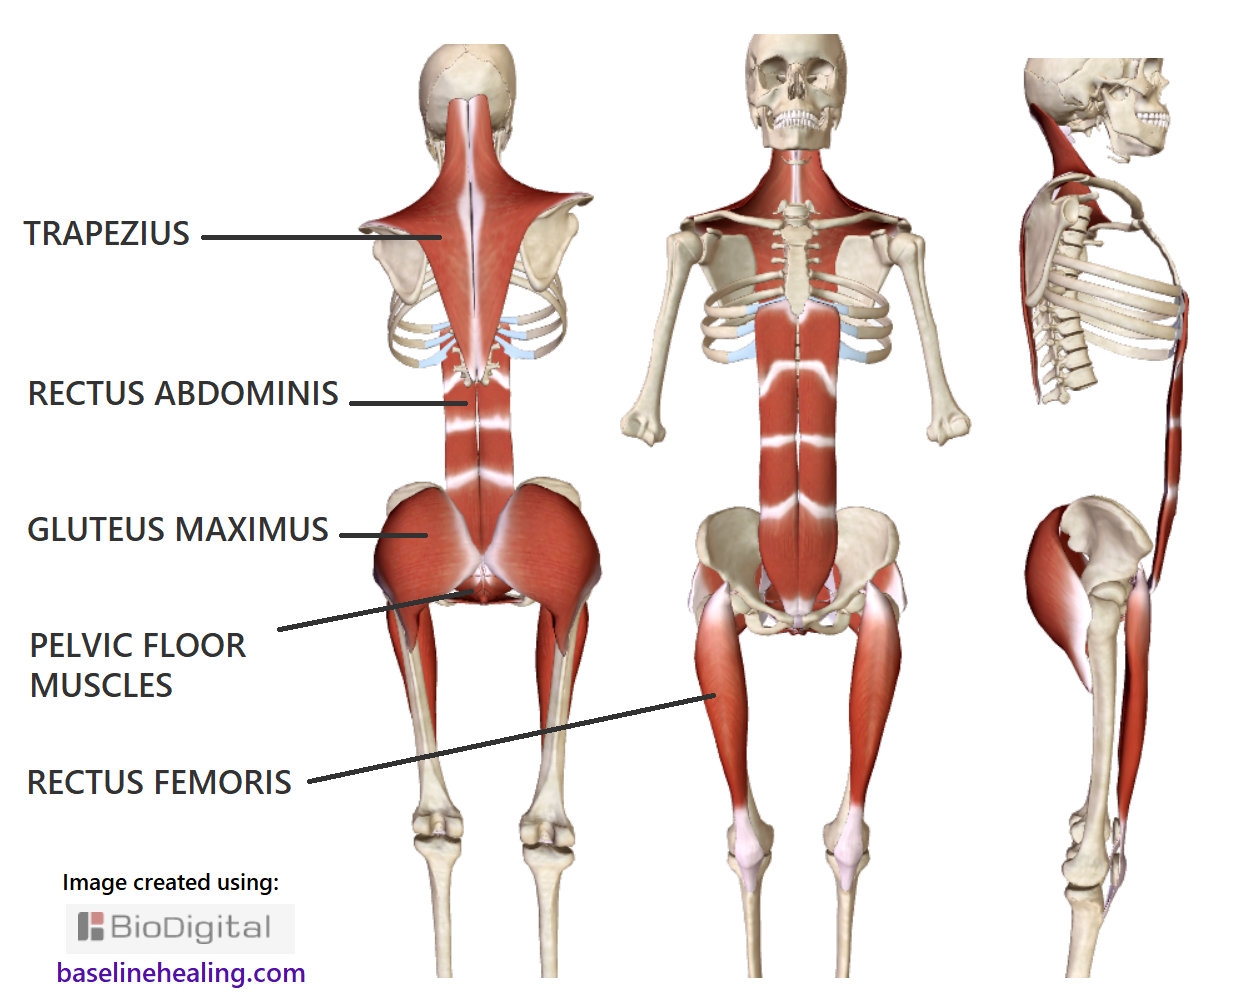 the 5 main muscles of movement labelled on a skeleton. Viewed from differenct angles. Trapezius of the upper body, the rectus abdominis at the front of the abdomen pelvis to chest, gluteus maximus big ass muscles, pelvic floor a group of muscles that are the base of the body and the rectus femoris of each leg, strong poles down the front of each thigh. The central muscular framework of the body. Key to a good posture and a full range of natural movement with dynamic balance and alignment.